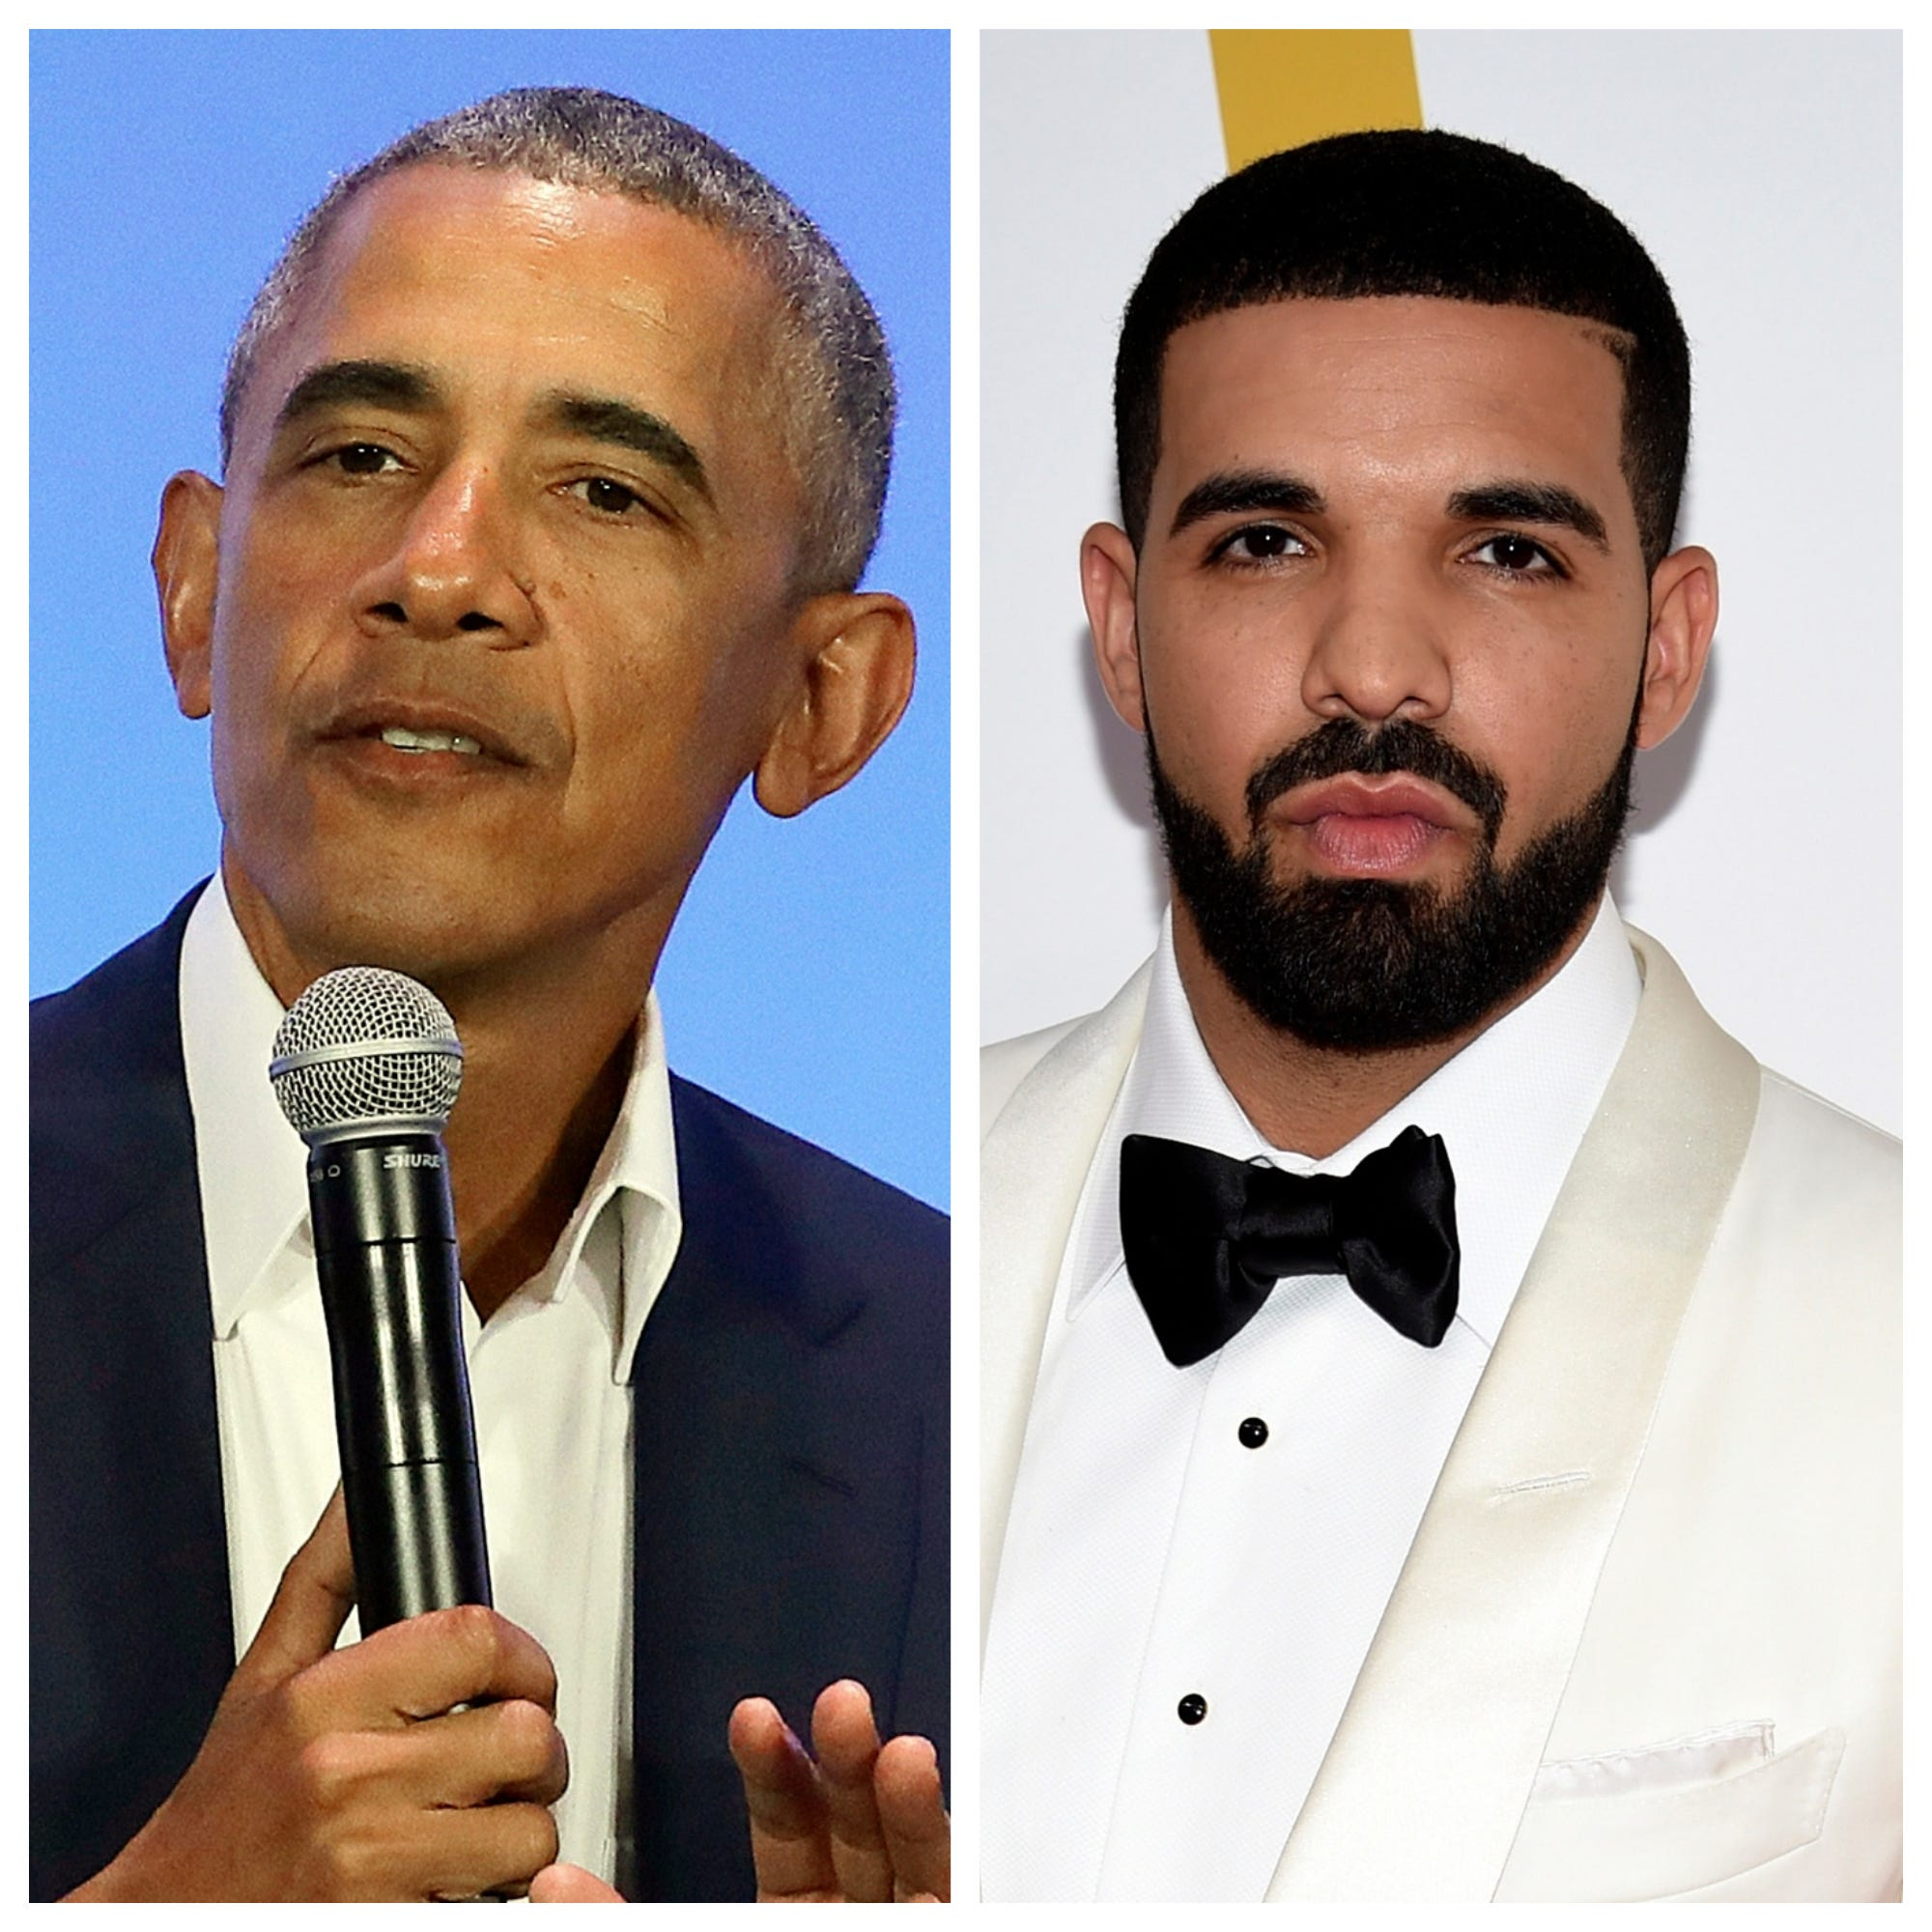 That is a talented, talented brother : Barack Obama endorses Drake to play him in a biopic